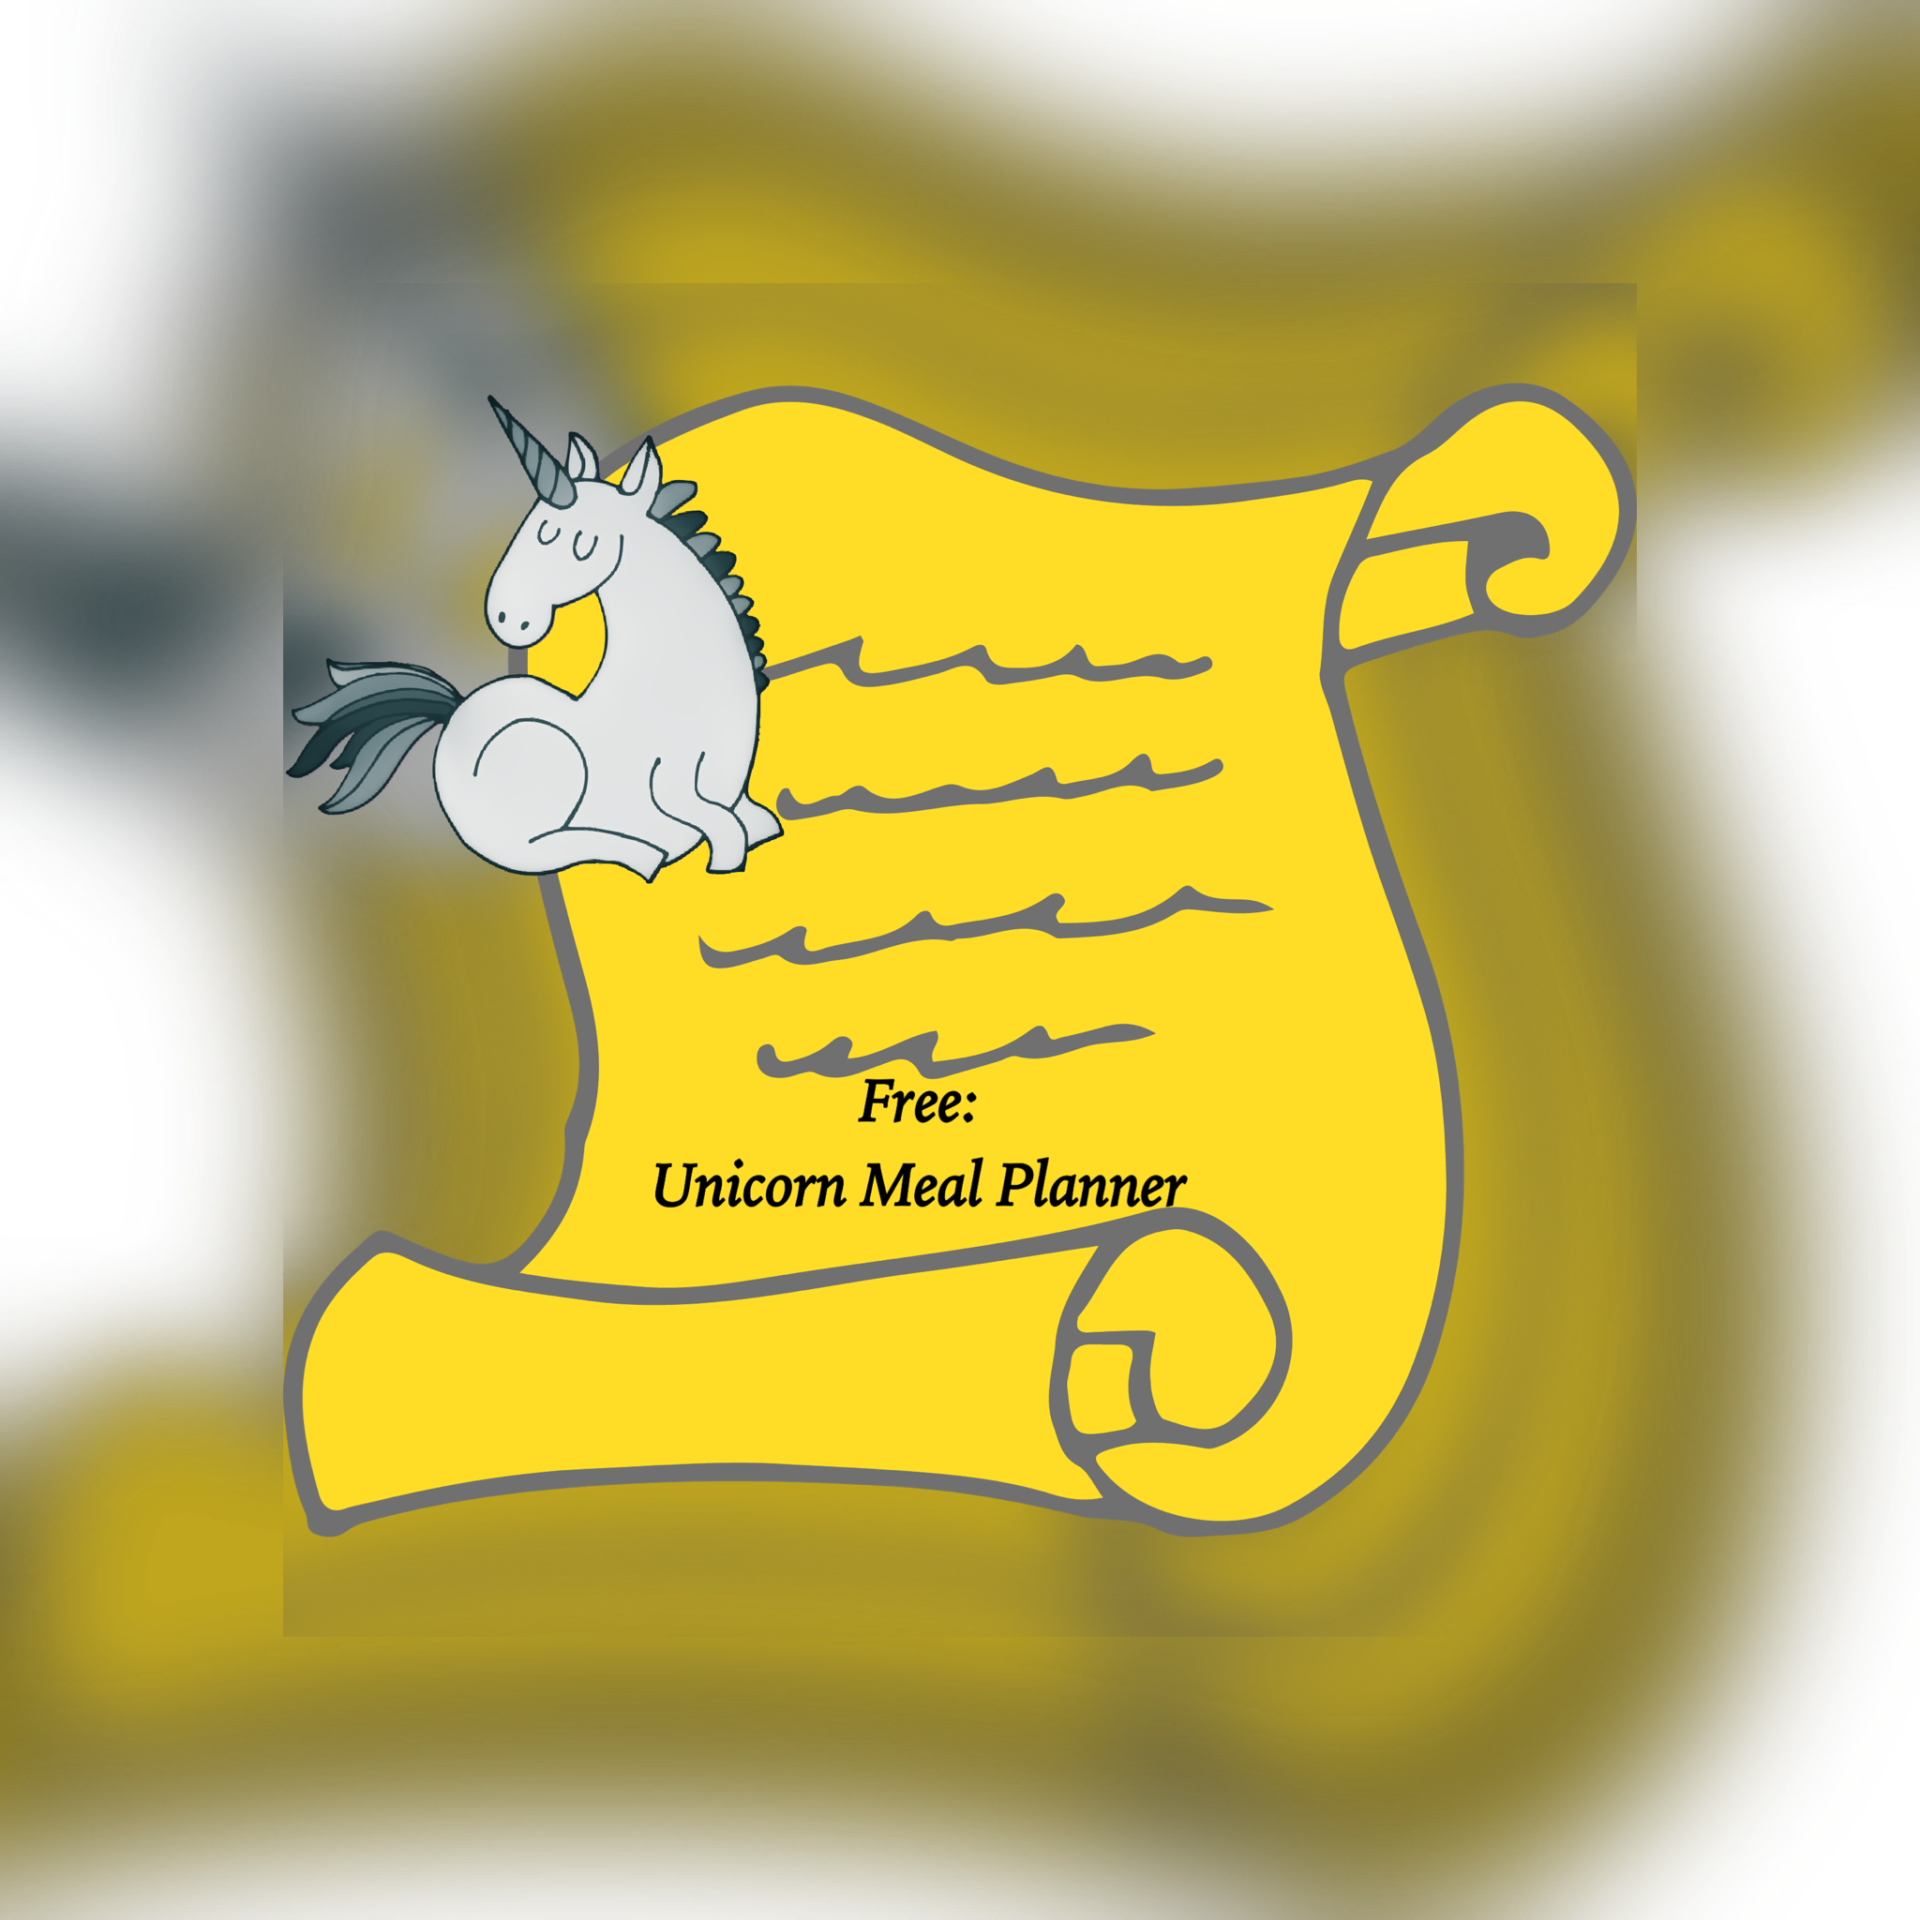 Image free unicorn meal planner